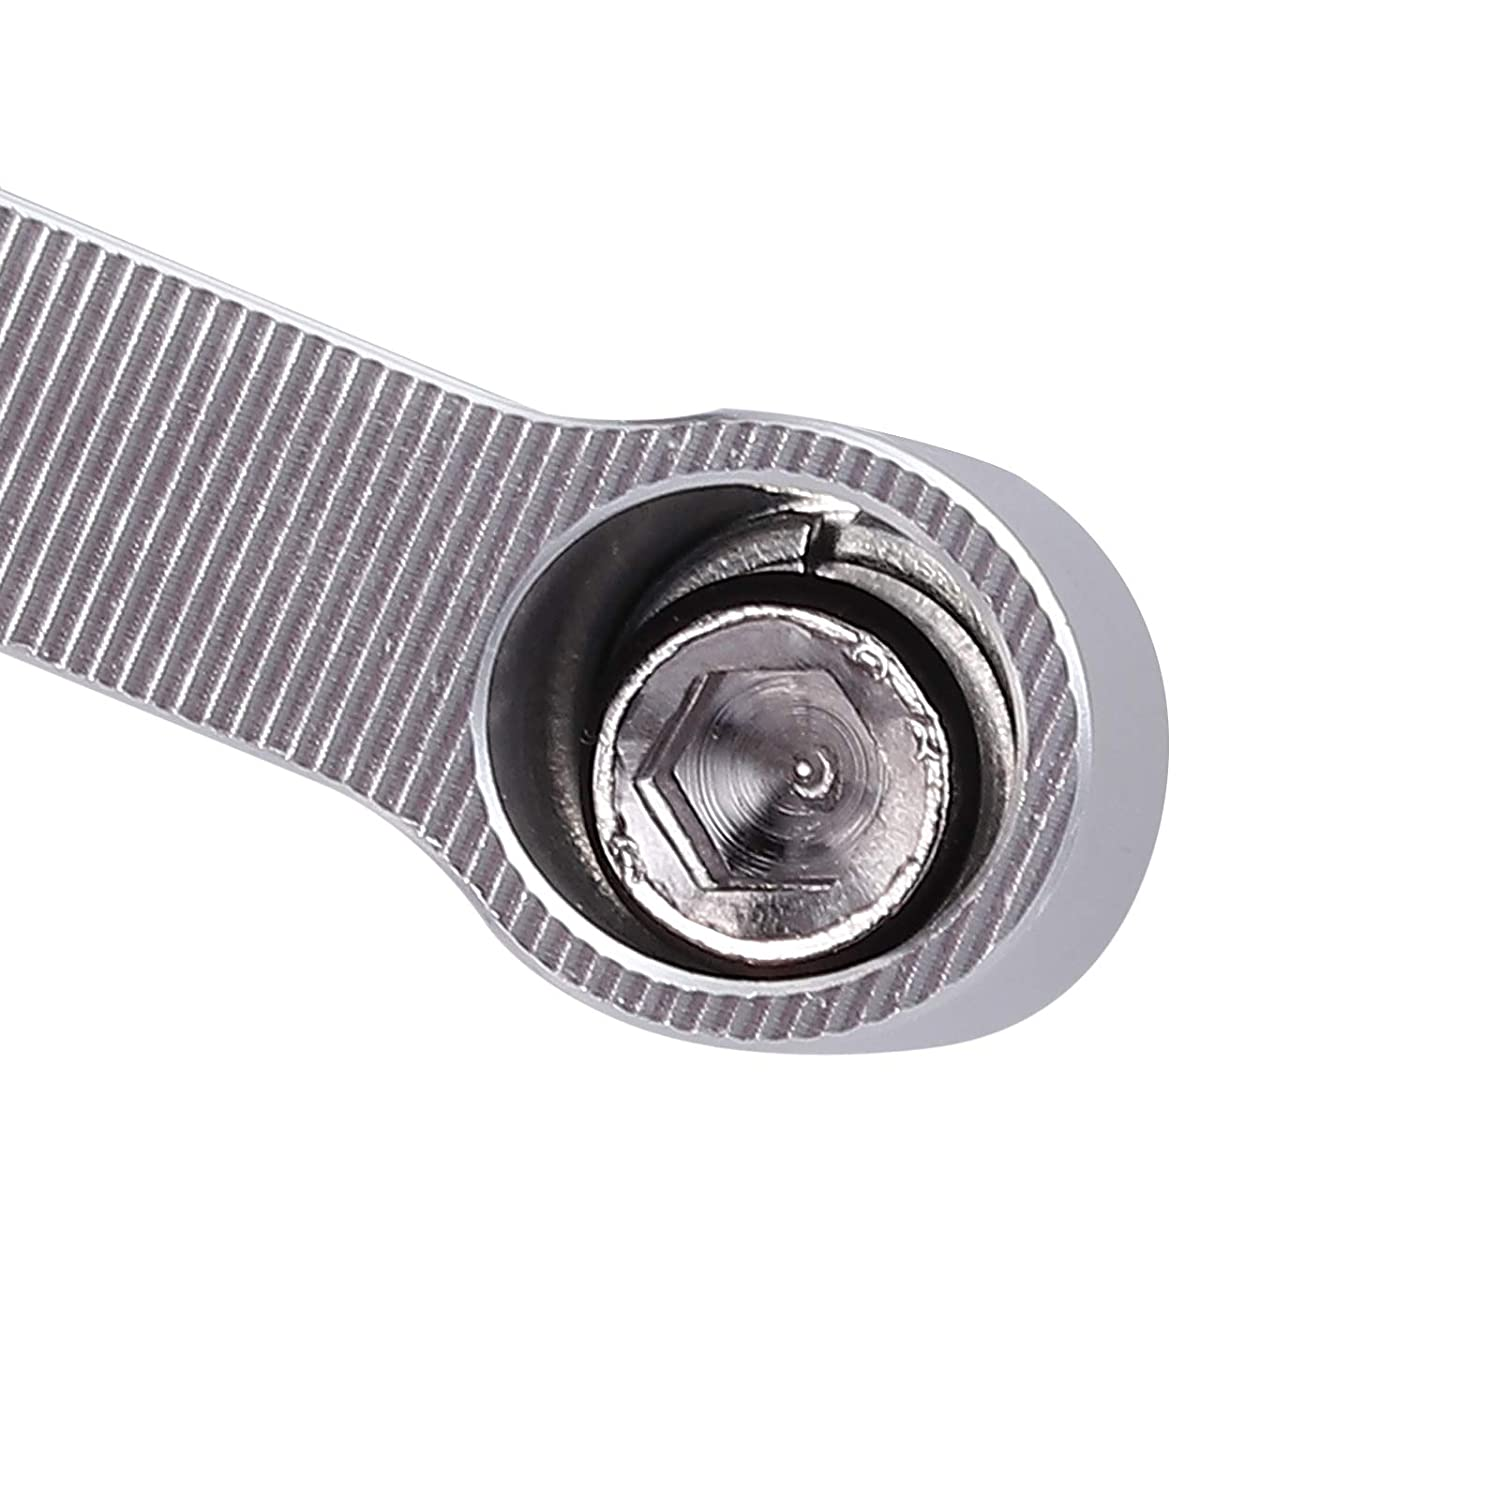 Neoteck Universal 8mm to 10mm Stem Mirror Mount Bolts Risers Extenders Adapters 1.25mm Thread Pitch for Motorcycle,Dual Sport,Cruisers,Scooters,Sportbikes Silver